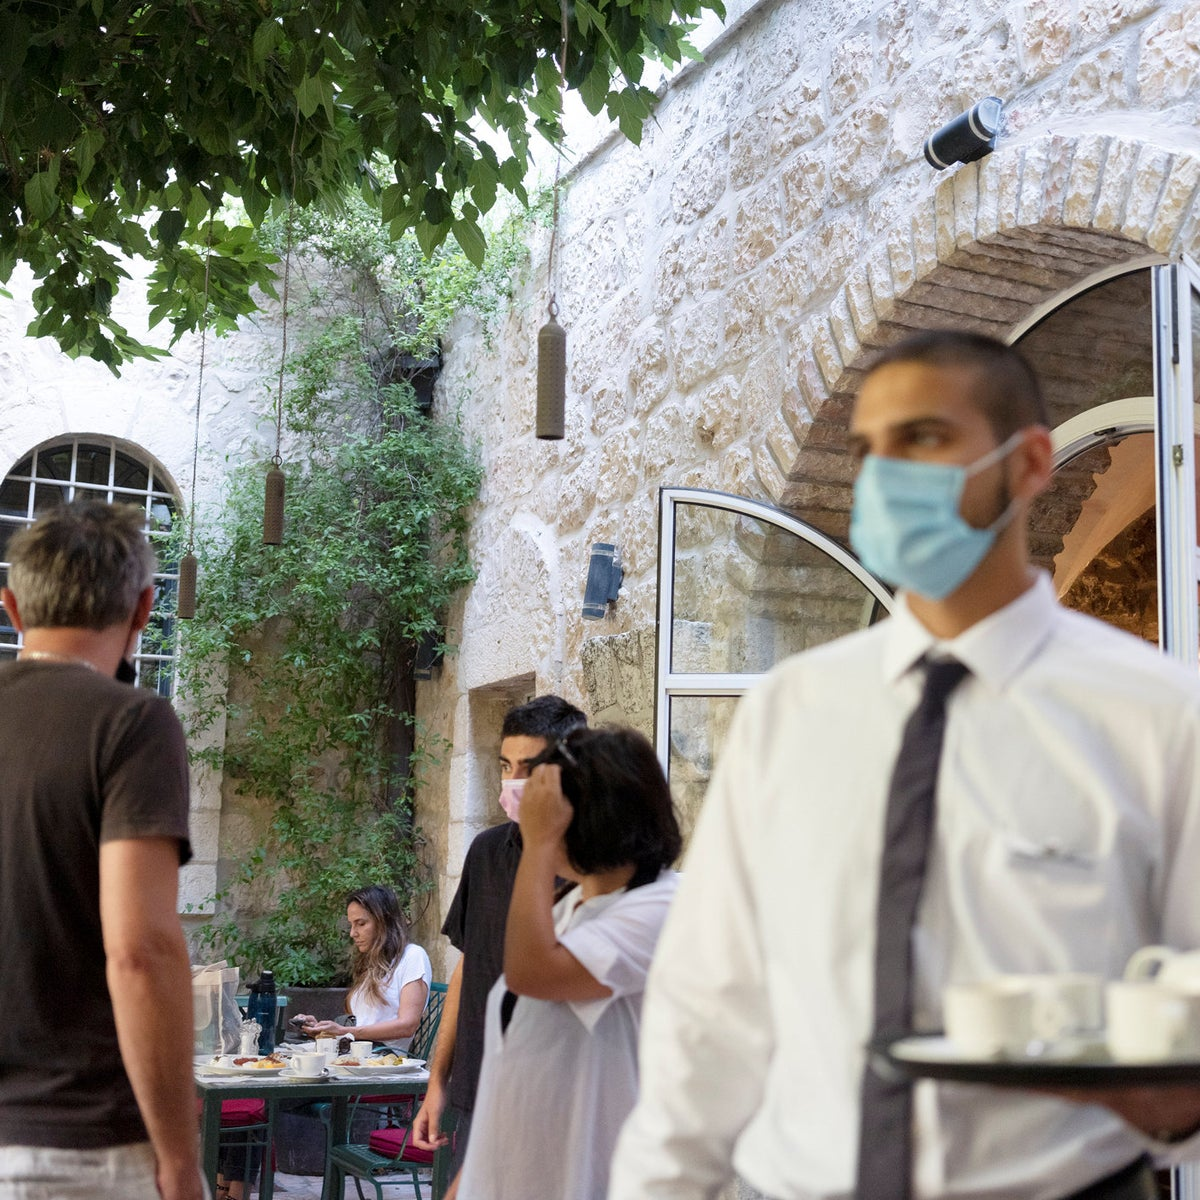 A waiter serves drinks to guests at the American Colony Hotel in East Jerusalem.